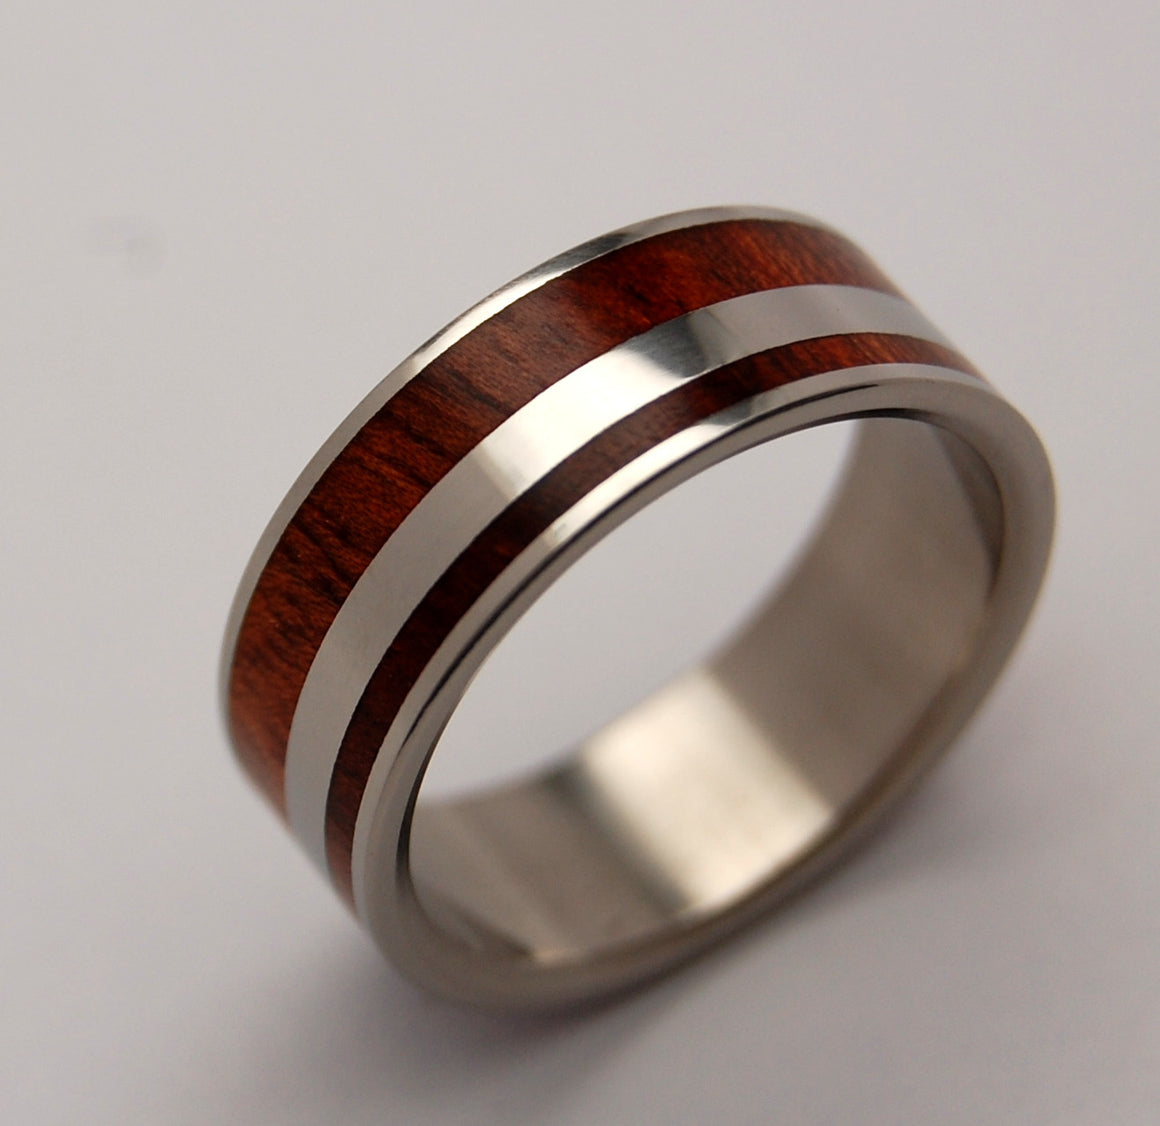 MORNING OF CREATION | Bloodwood & Titanium Men's Wedding Rings - Minter and Richter Designs